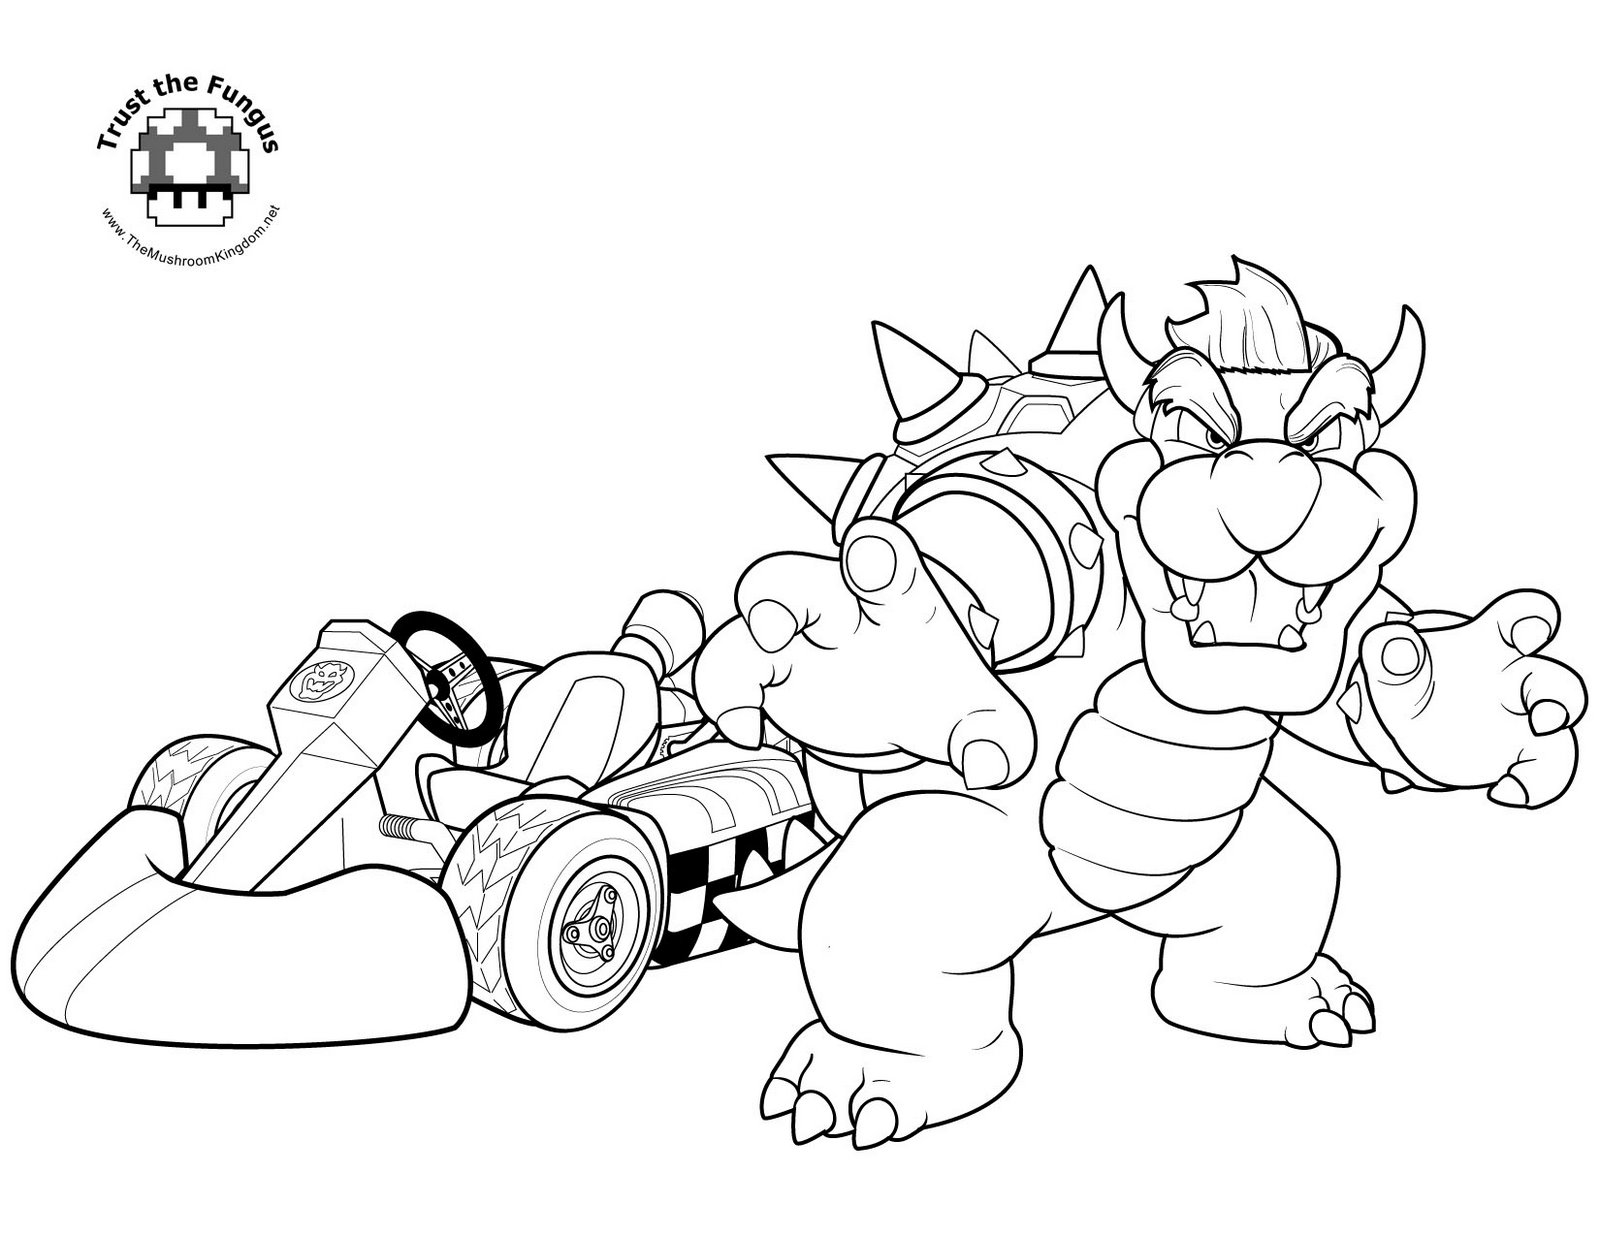 coloring sheet mario coloring pages free printable coloring pages cool coloring pages super coloring pages sheet mario coloring